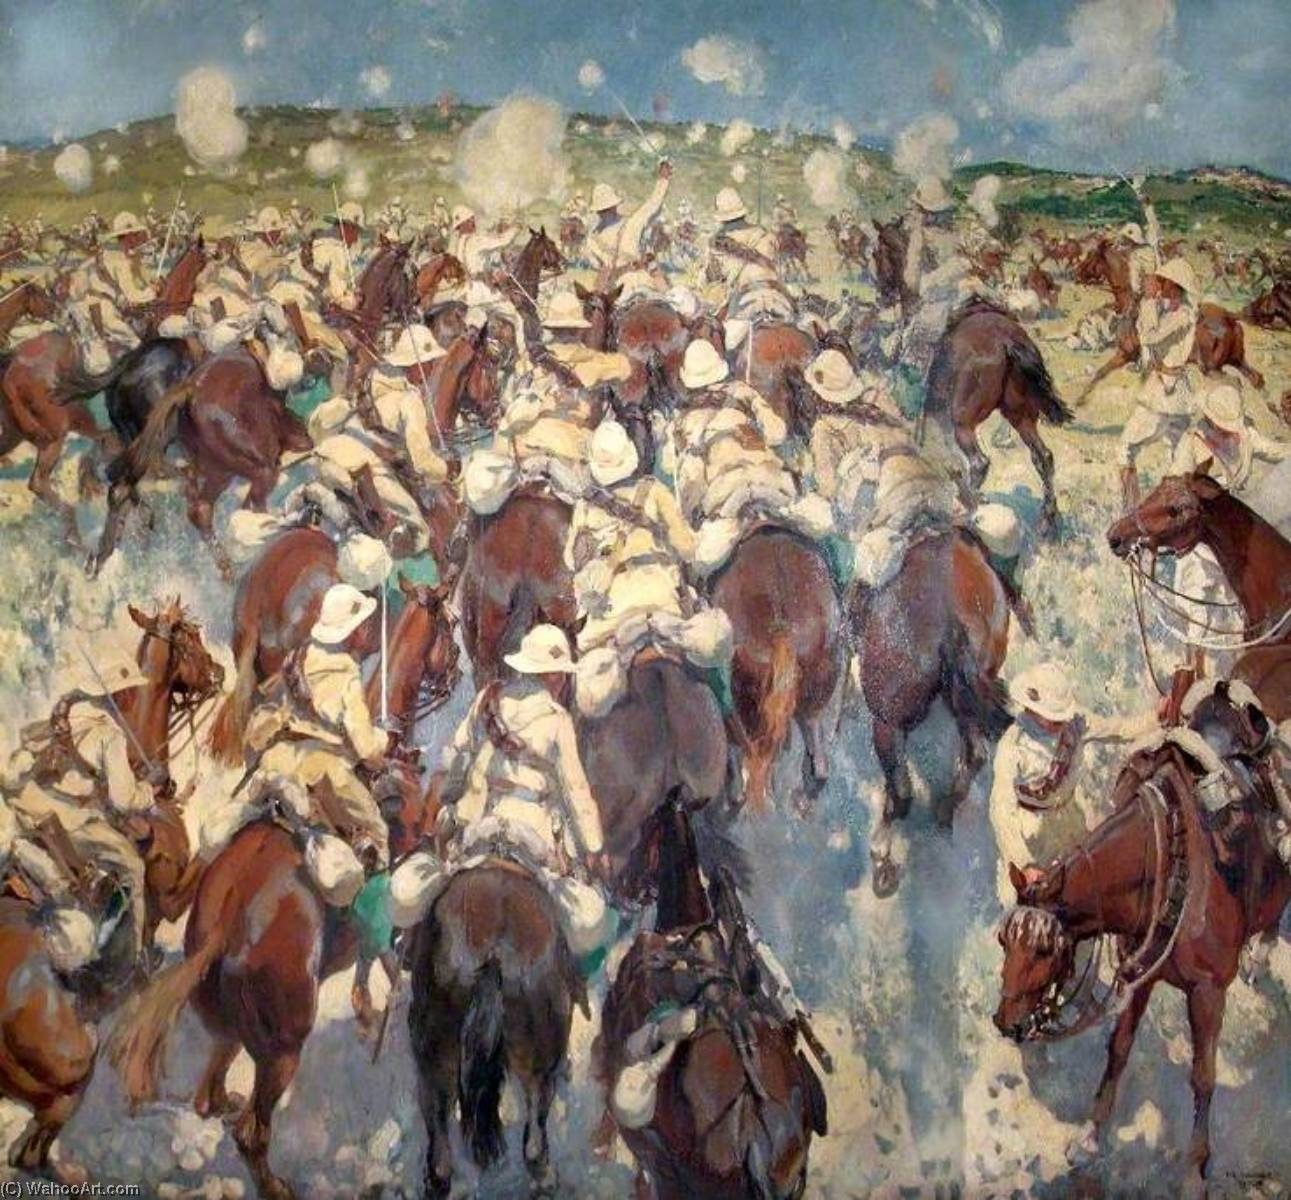 The Charge of the Royal Buckinghamshire Hussars at El Mughar, Palestine, 13 November 1917, 1920 by Thomas Cantrell Dugdale (1880-1952, United Kingdom) | Oil Painting | ArtsDot.com